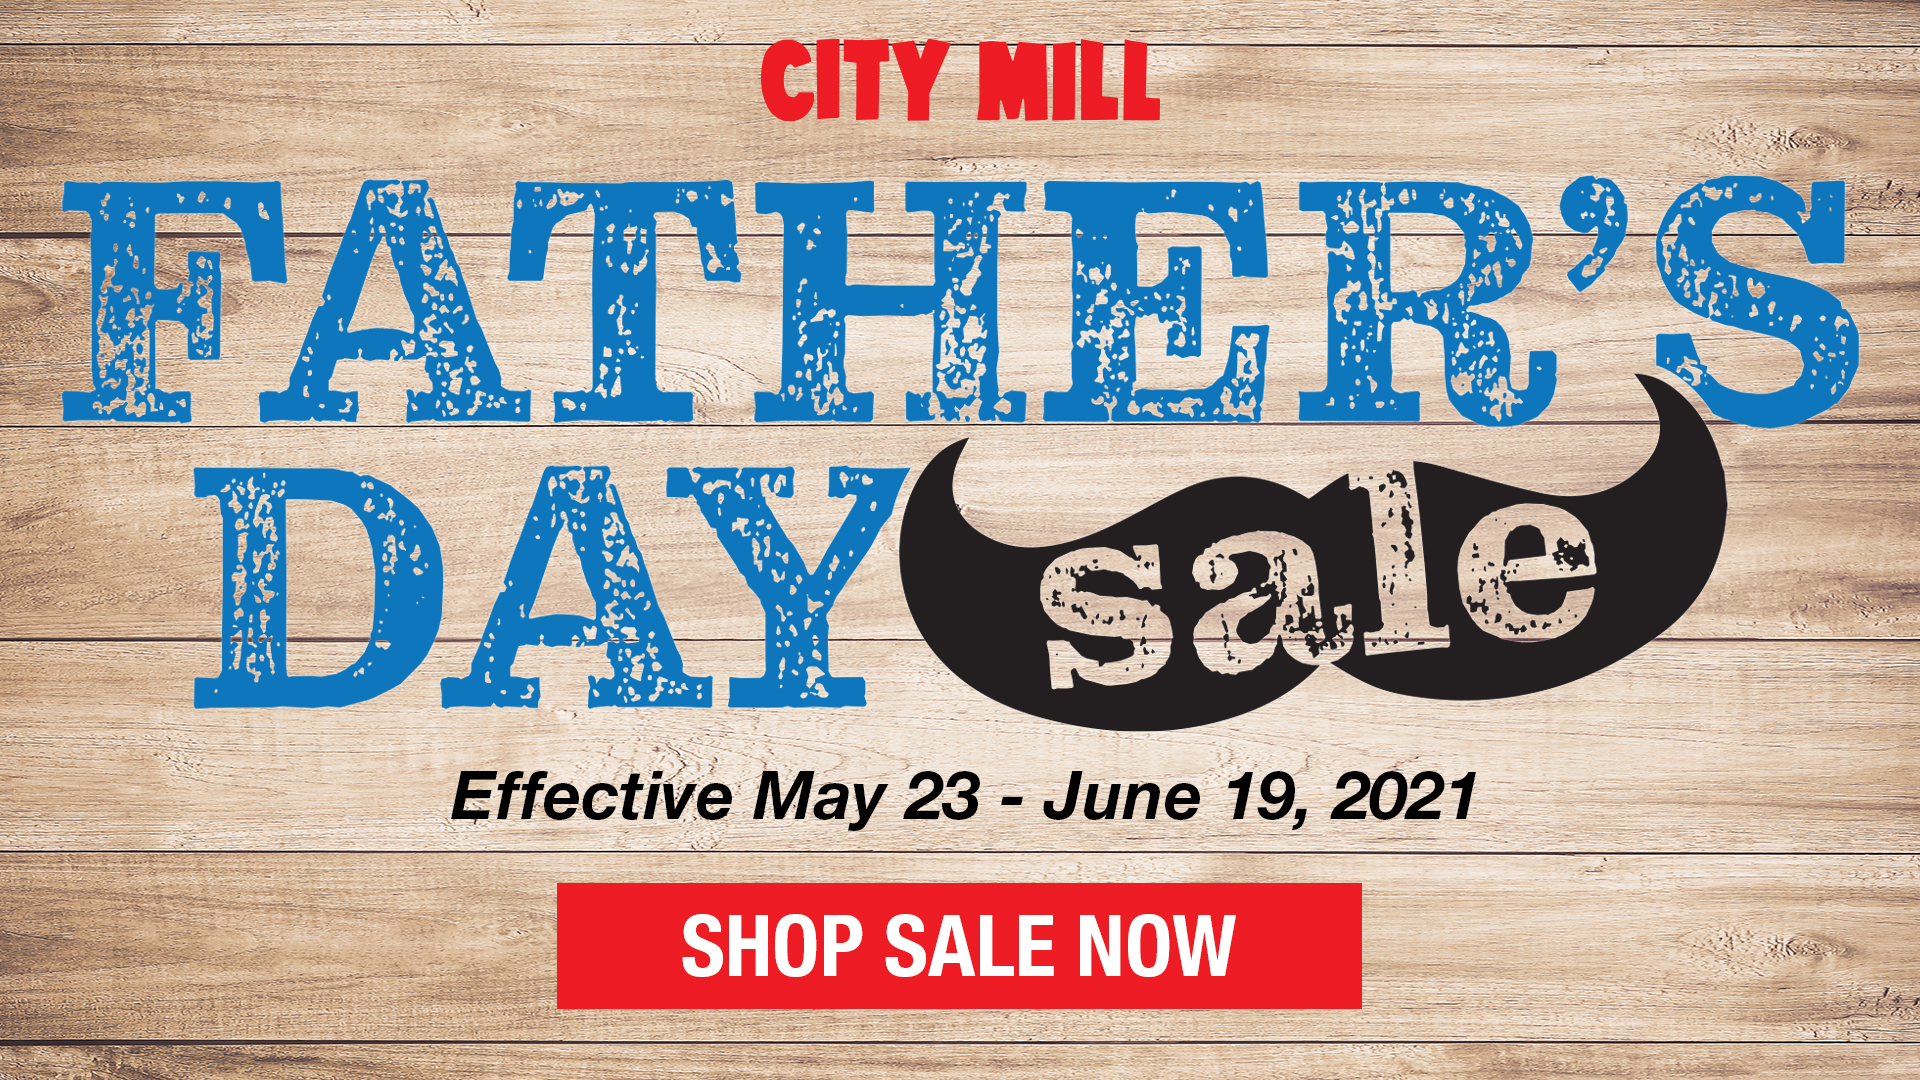 City Mill Father's Day Sale